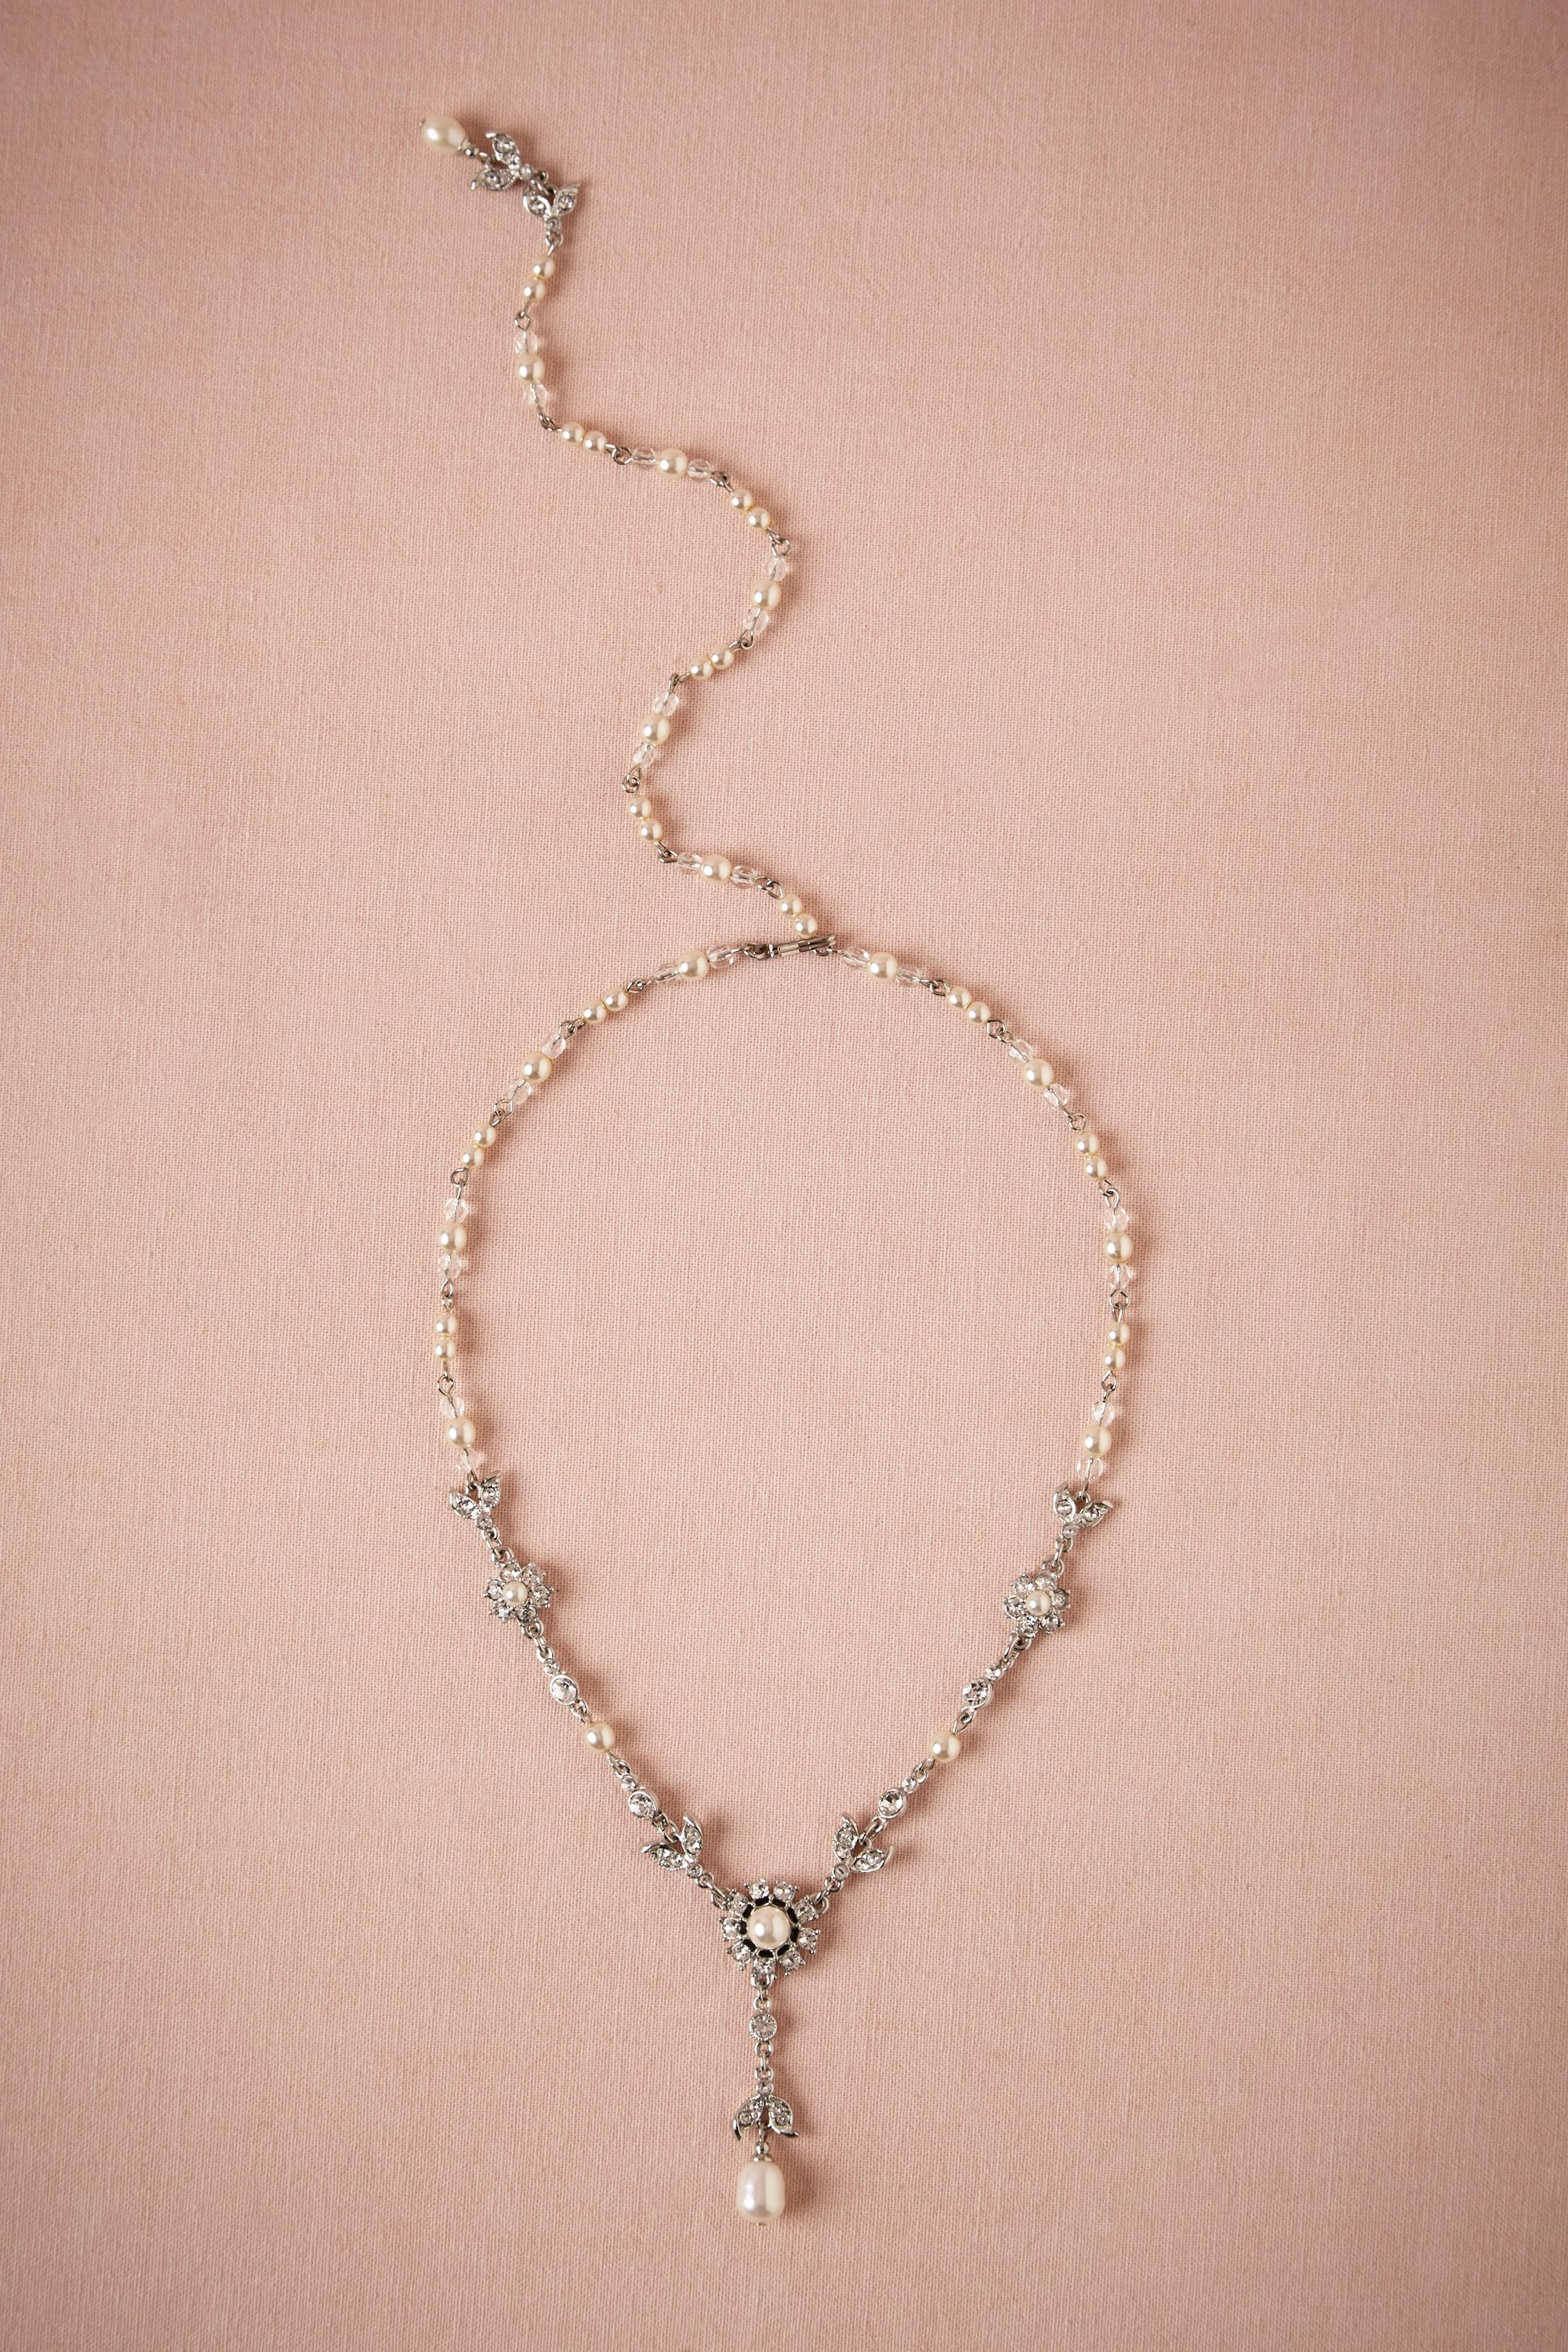 BHLDN Vintage Wedding Jewelry - Glinted Back Drape Necklace